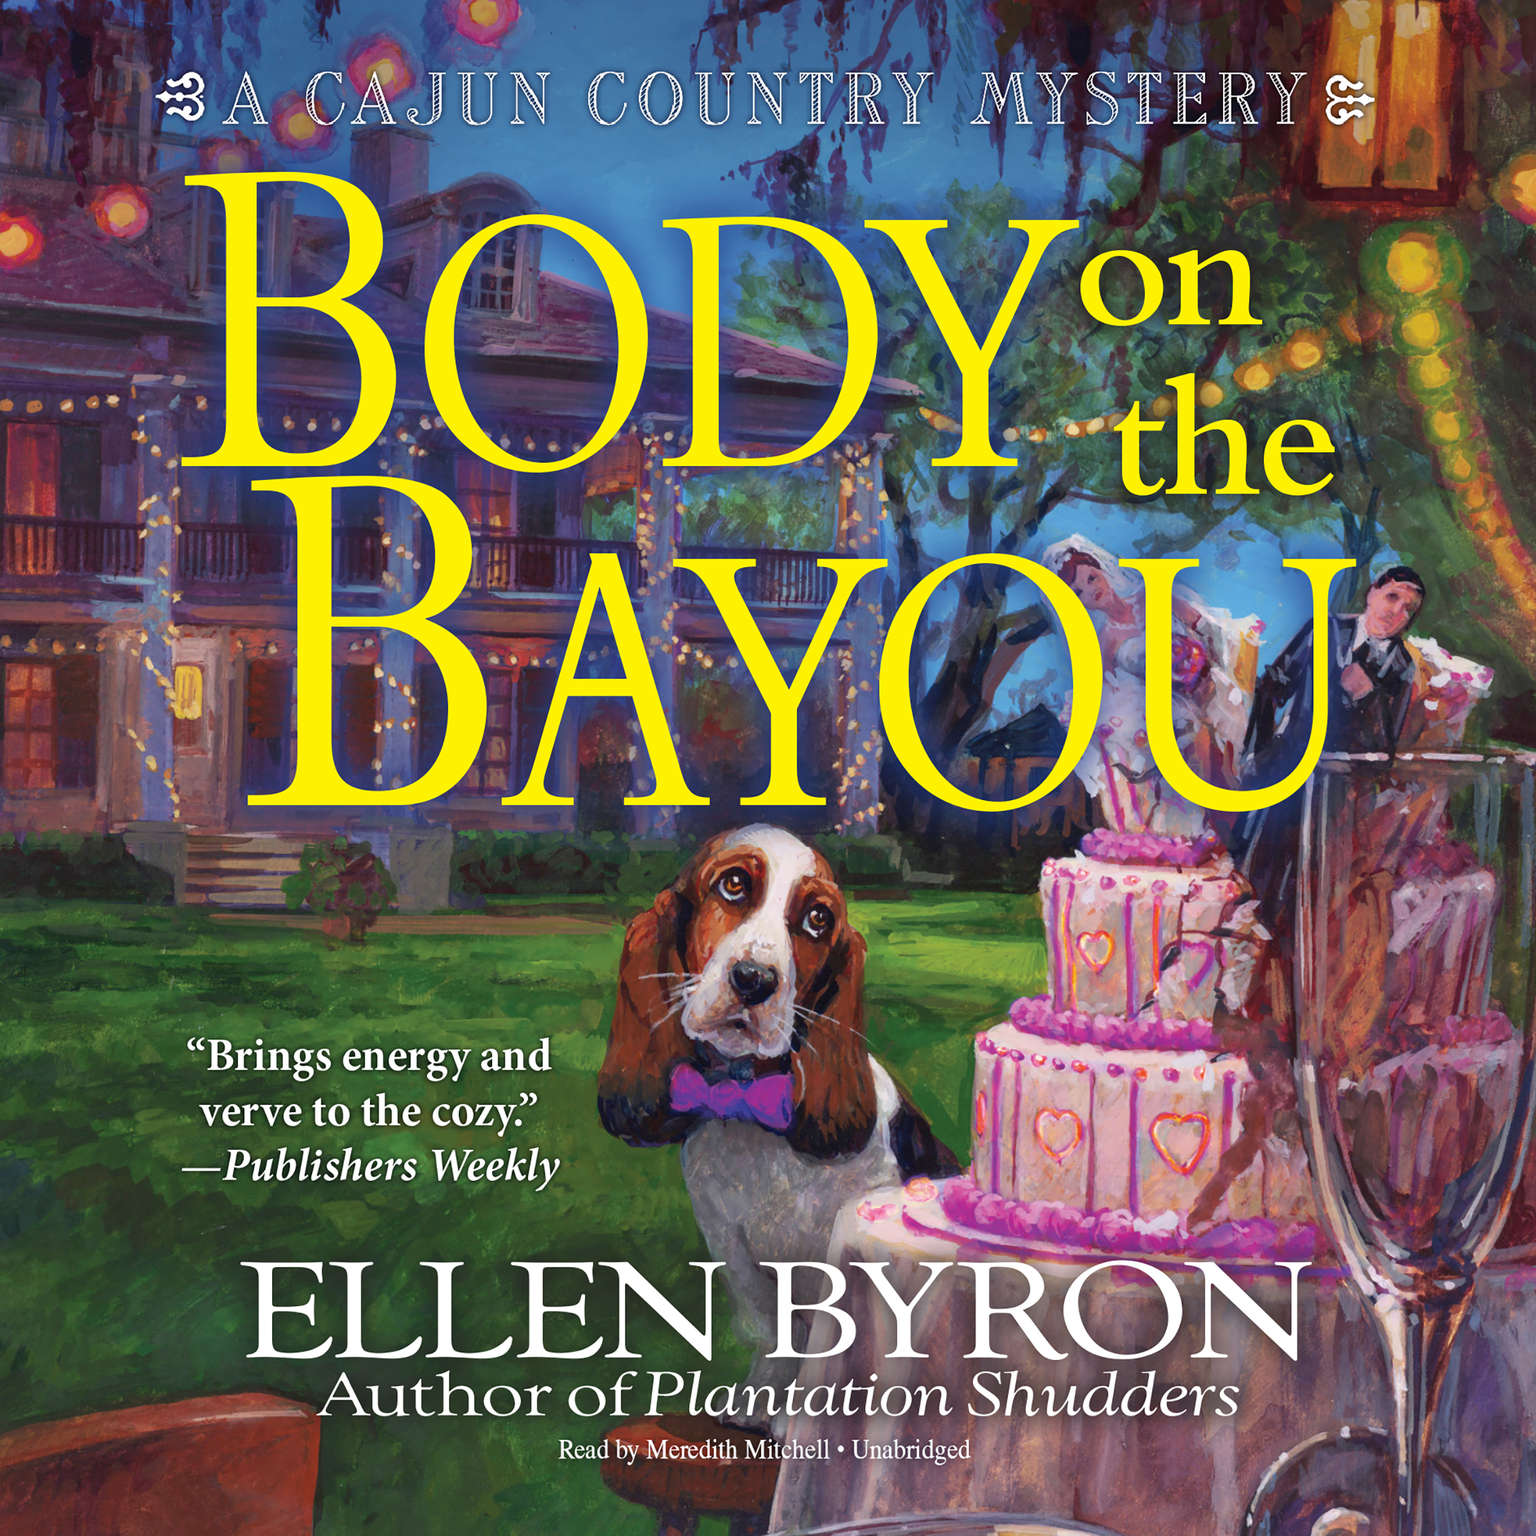 Printable Body on the Bayou: A Cajun Country Mystery Audiobook Cover Art